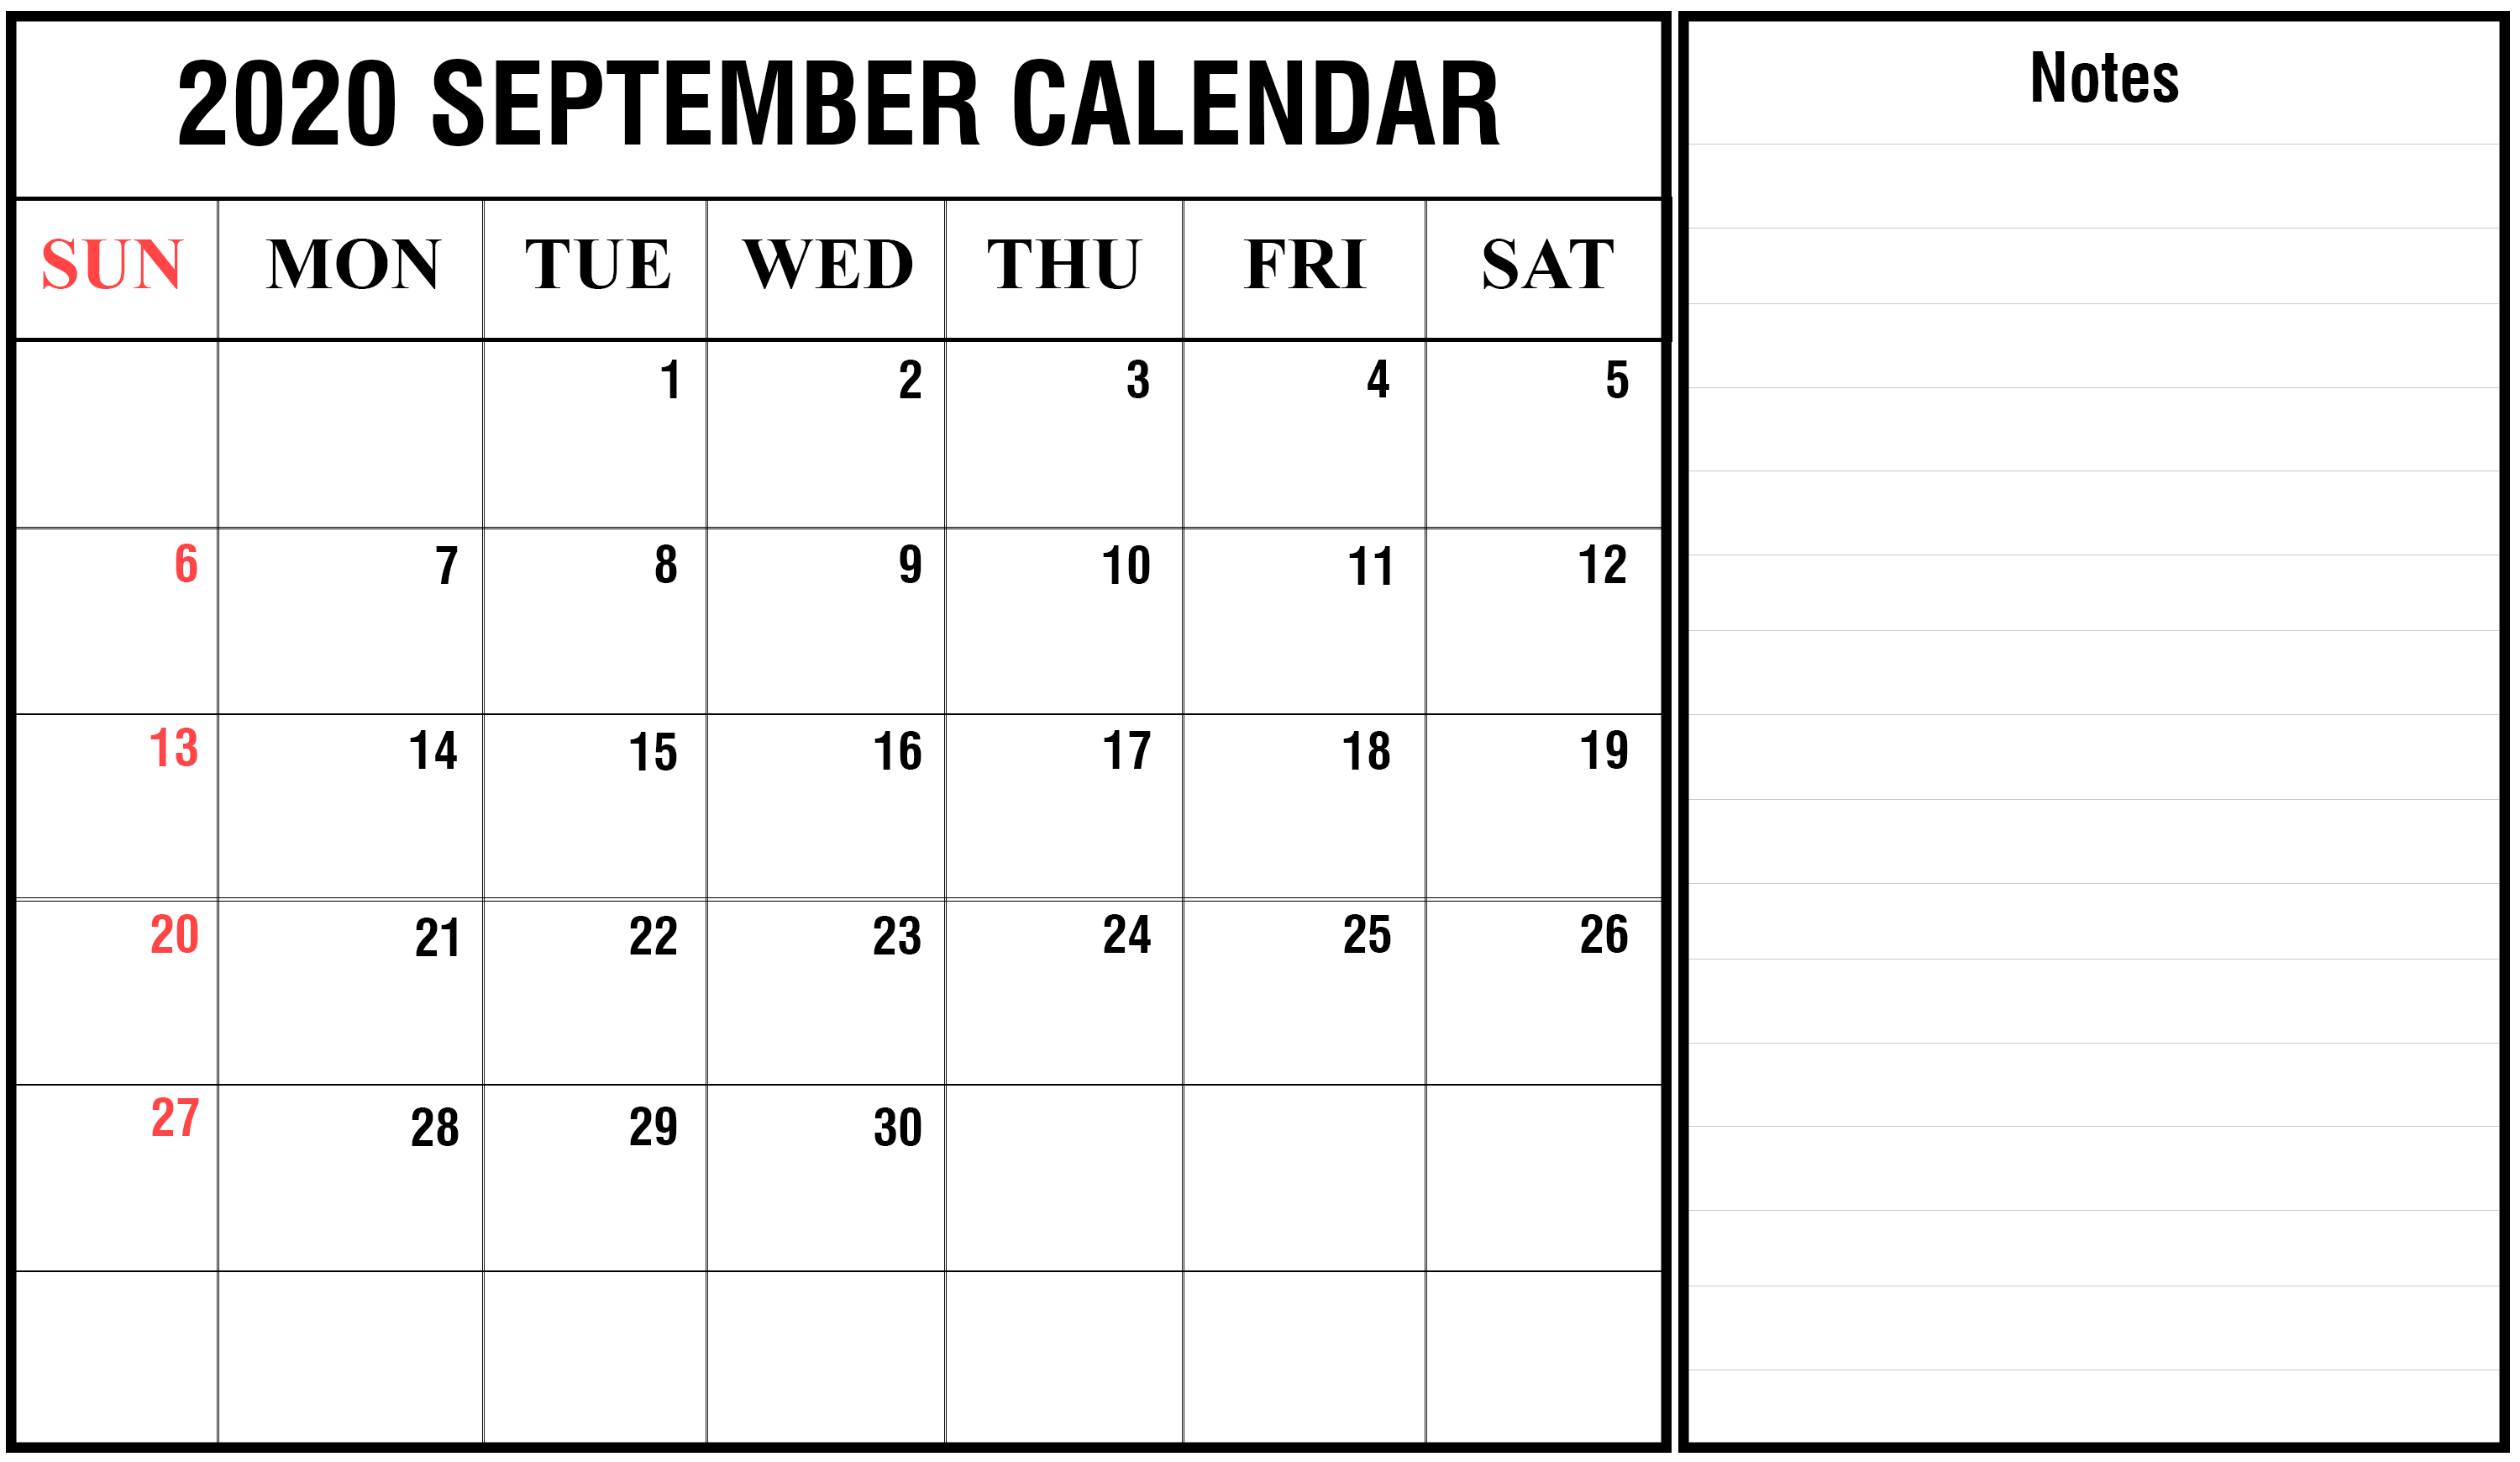 Free Printable September 2020 Calendar With Notes